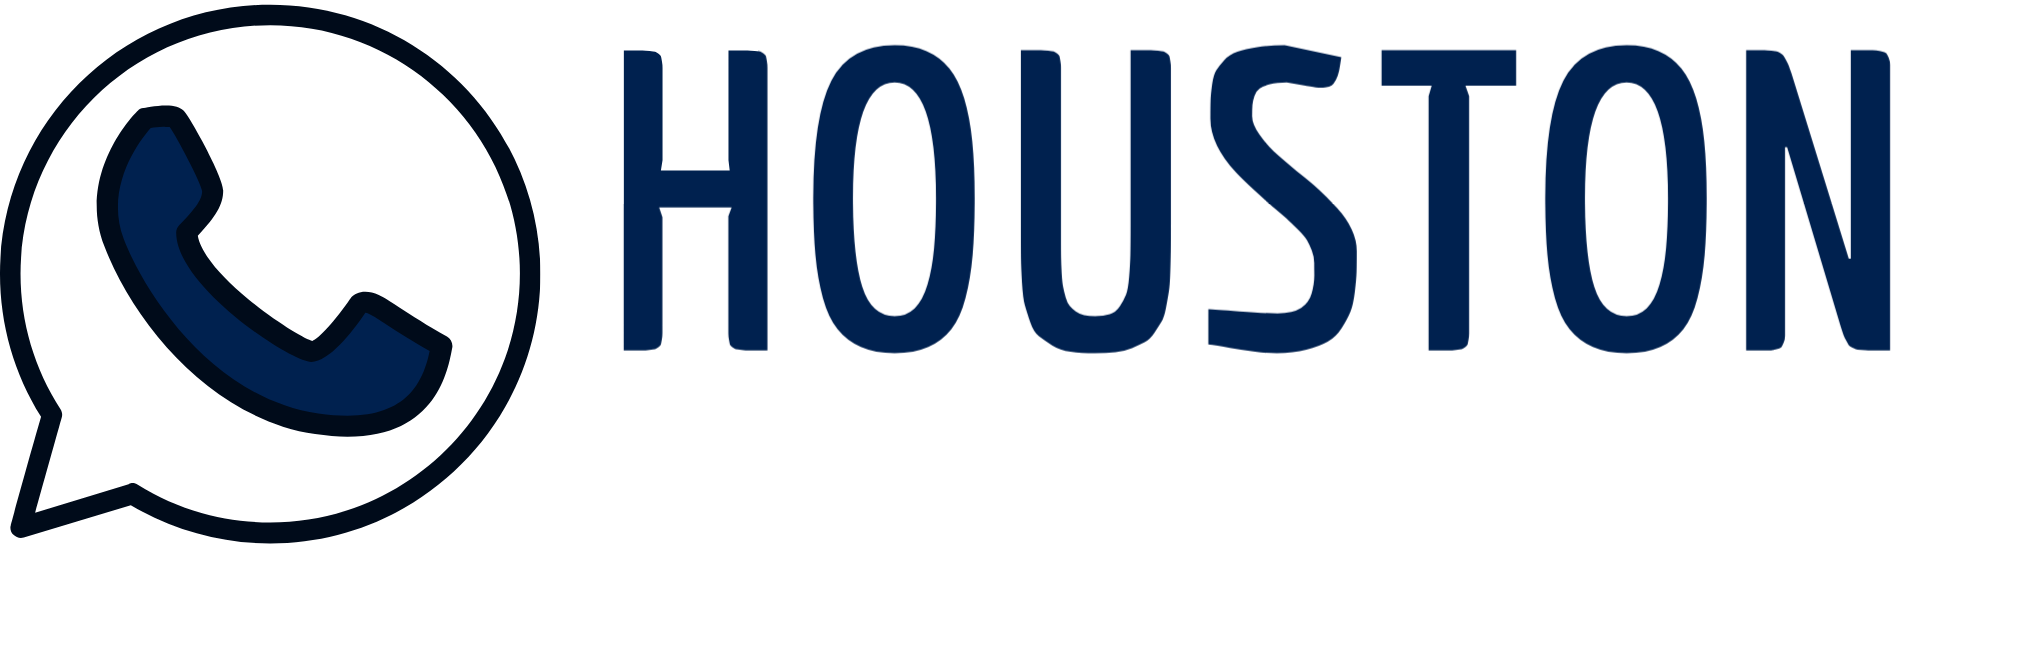 Houston Medicare Help